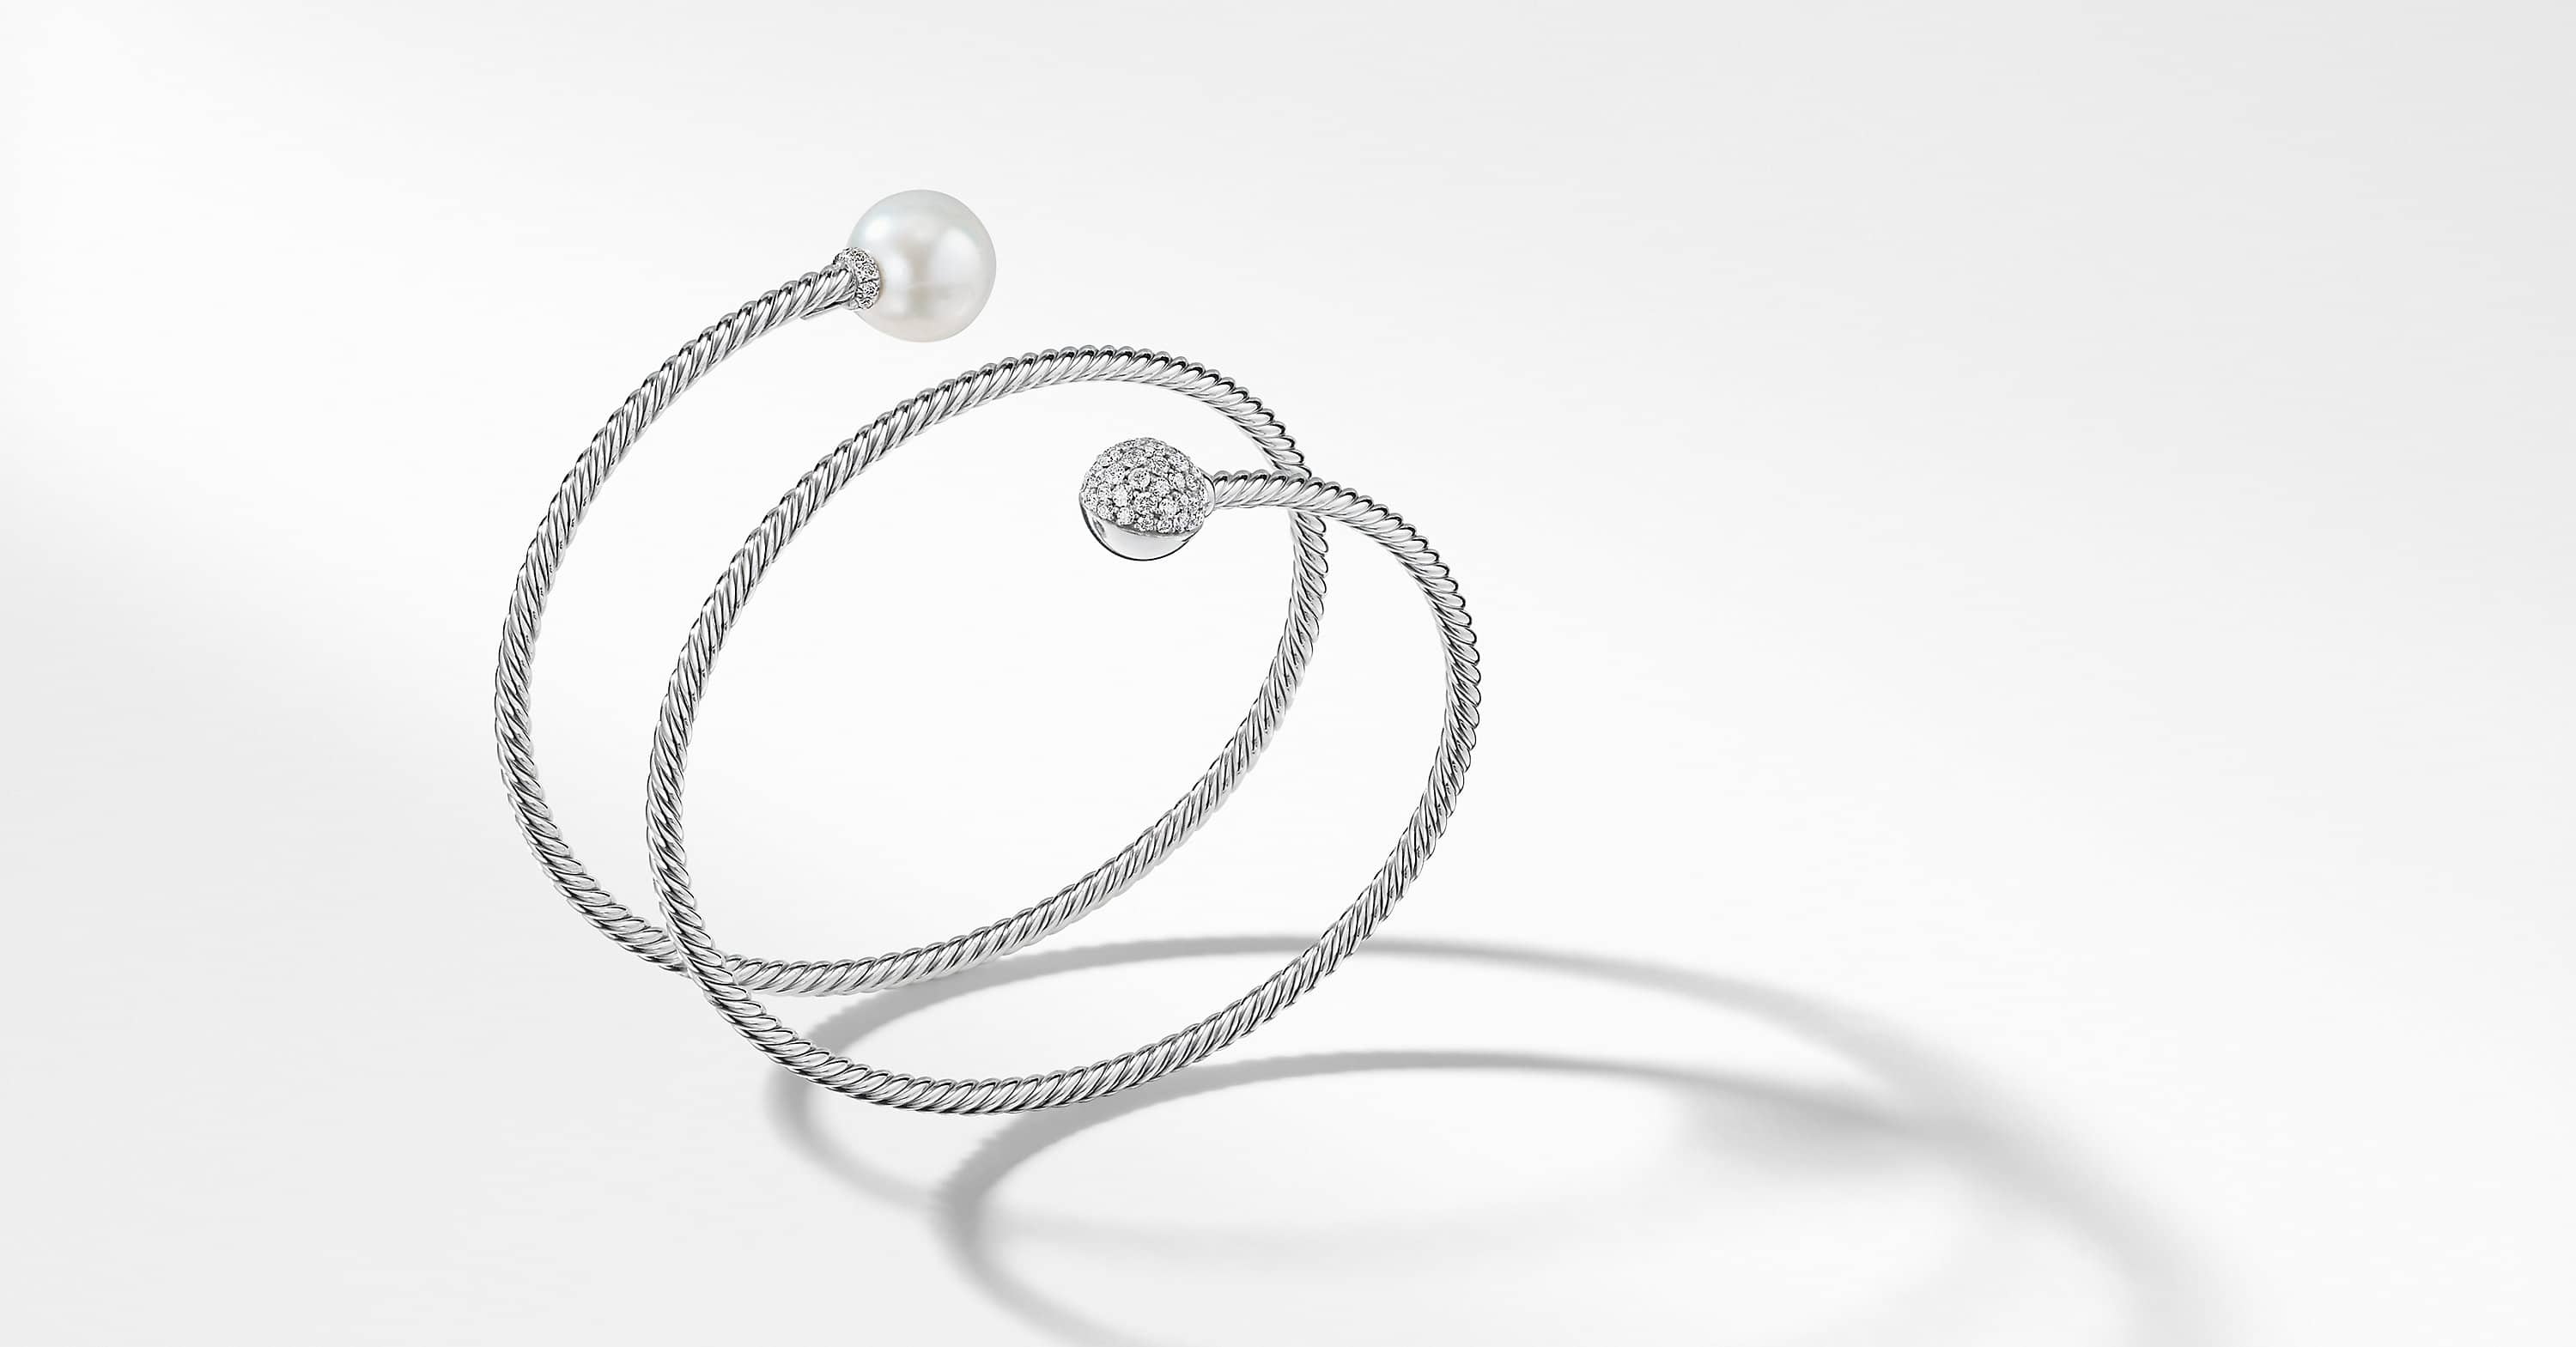 Petite Solari Coil Bracelet with Diamonds in 18K White Gold